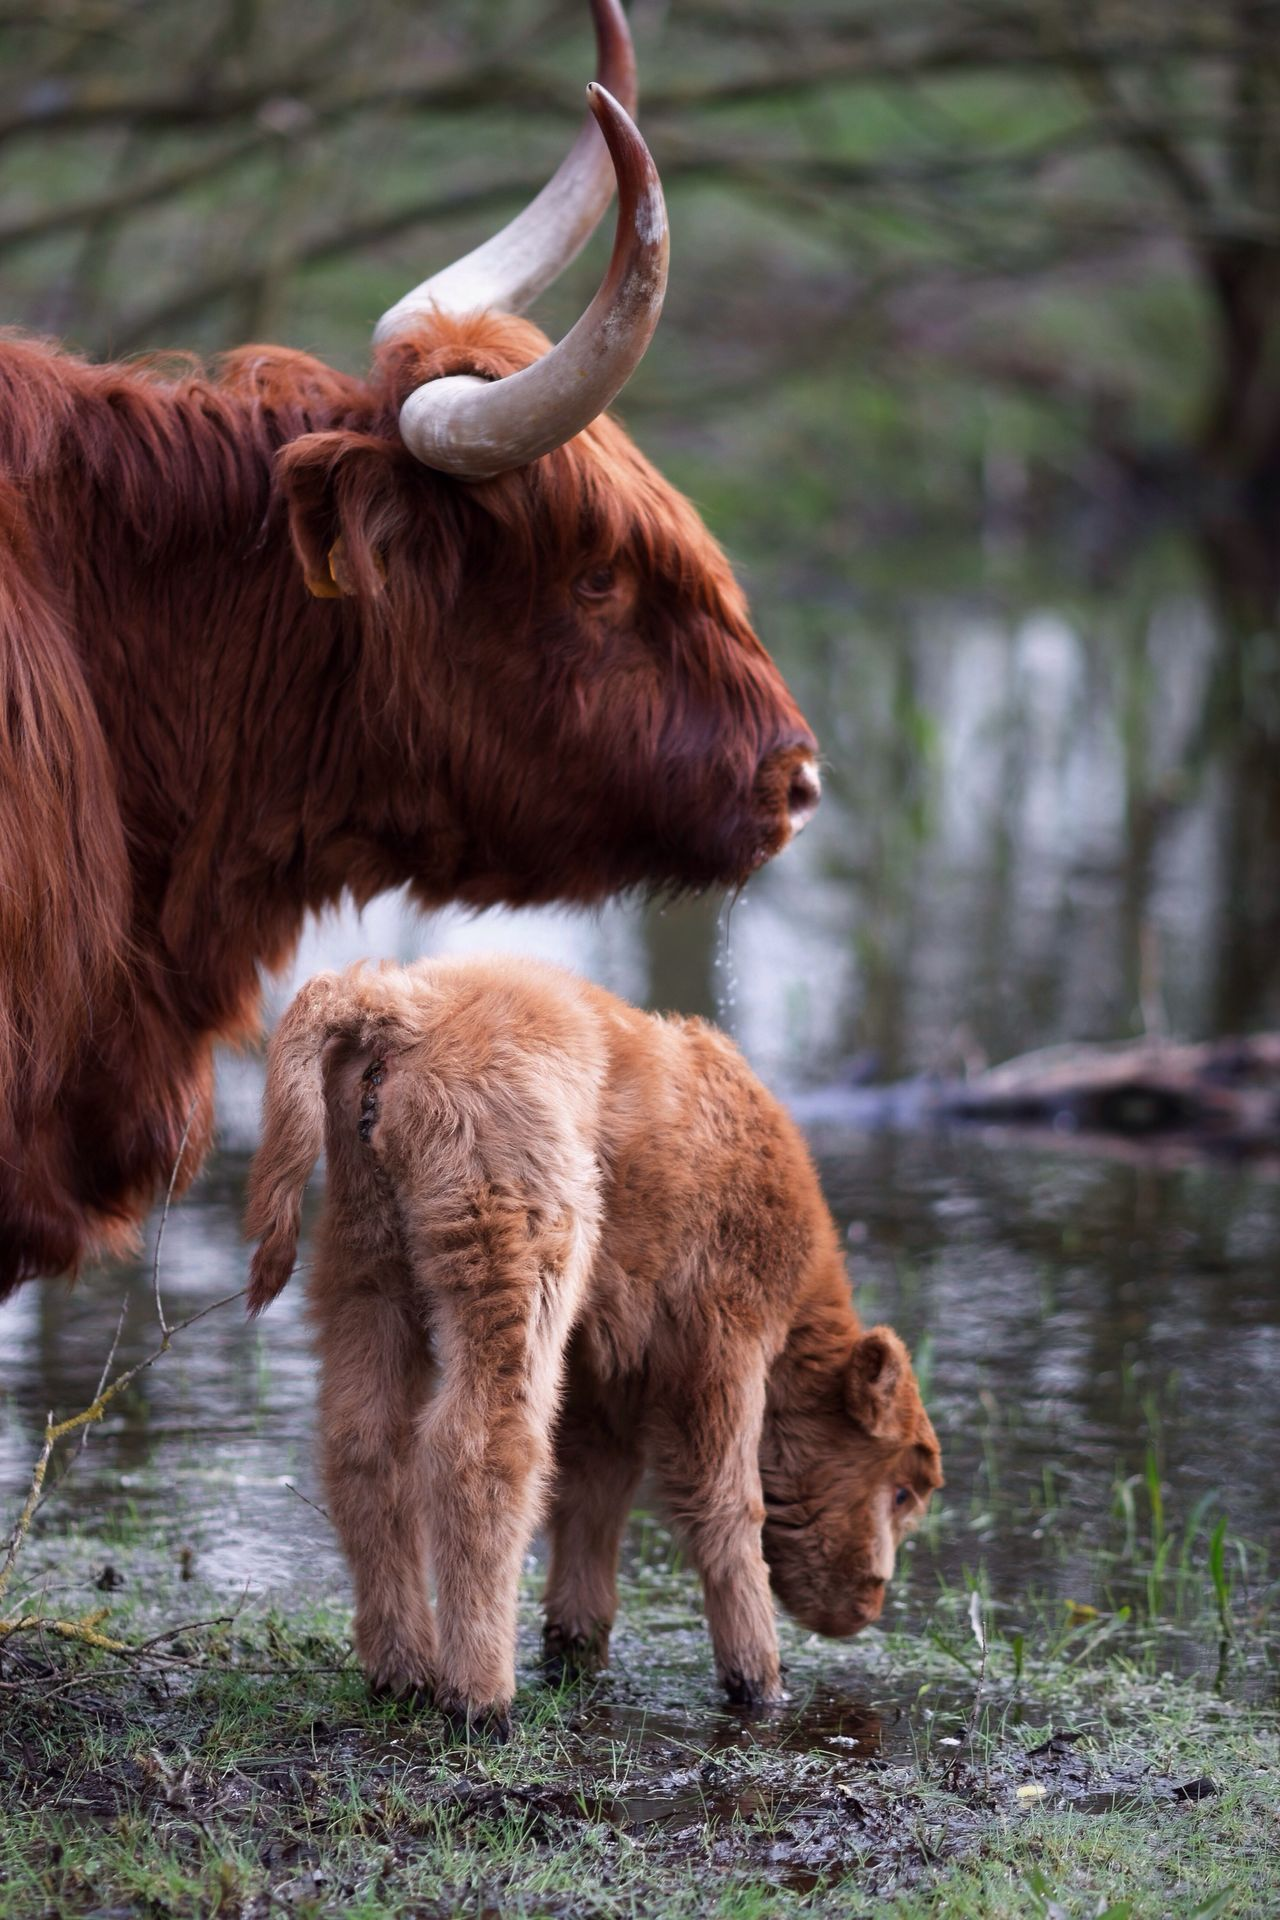 Babygirl Newly Born Spring 2017 Highland Cattle Animals In The Wild Animal Themes Outdoors Brown Mammal Domestic Animals Water No People Livestock Highland Cattle Day Grass Nature